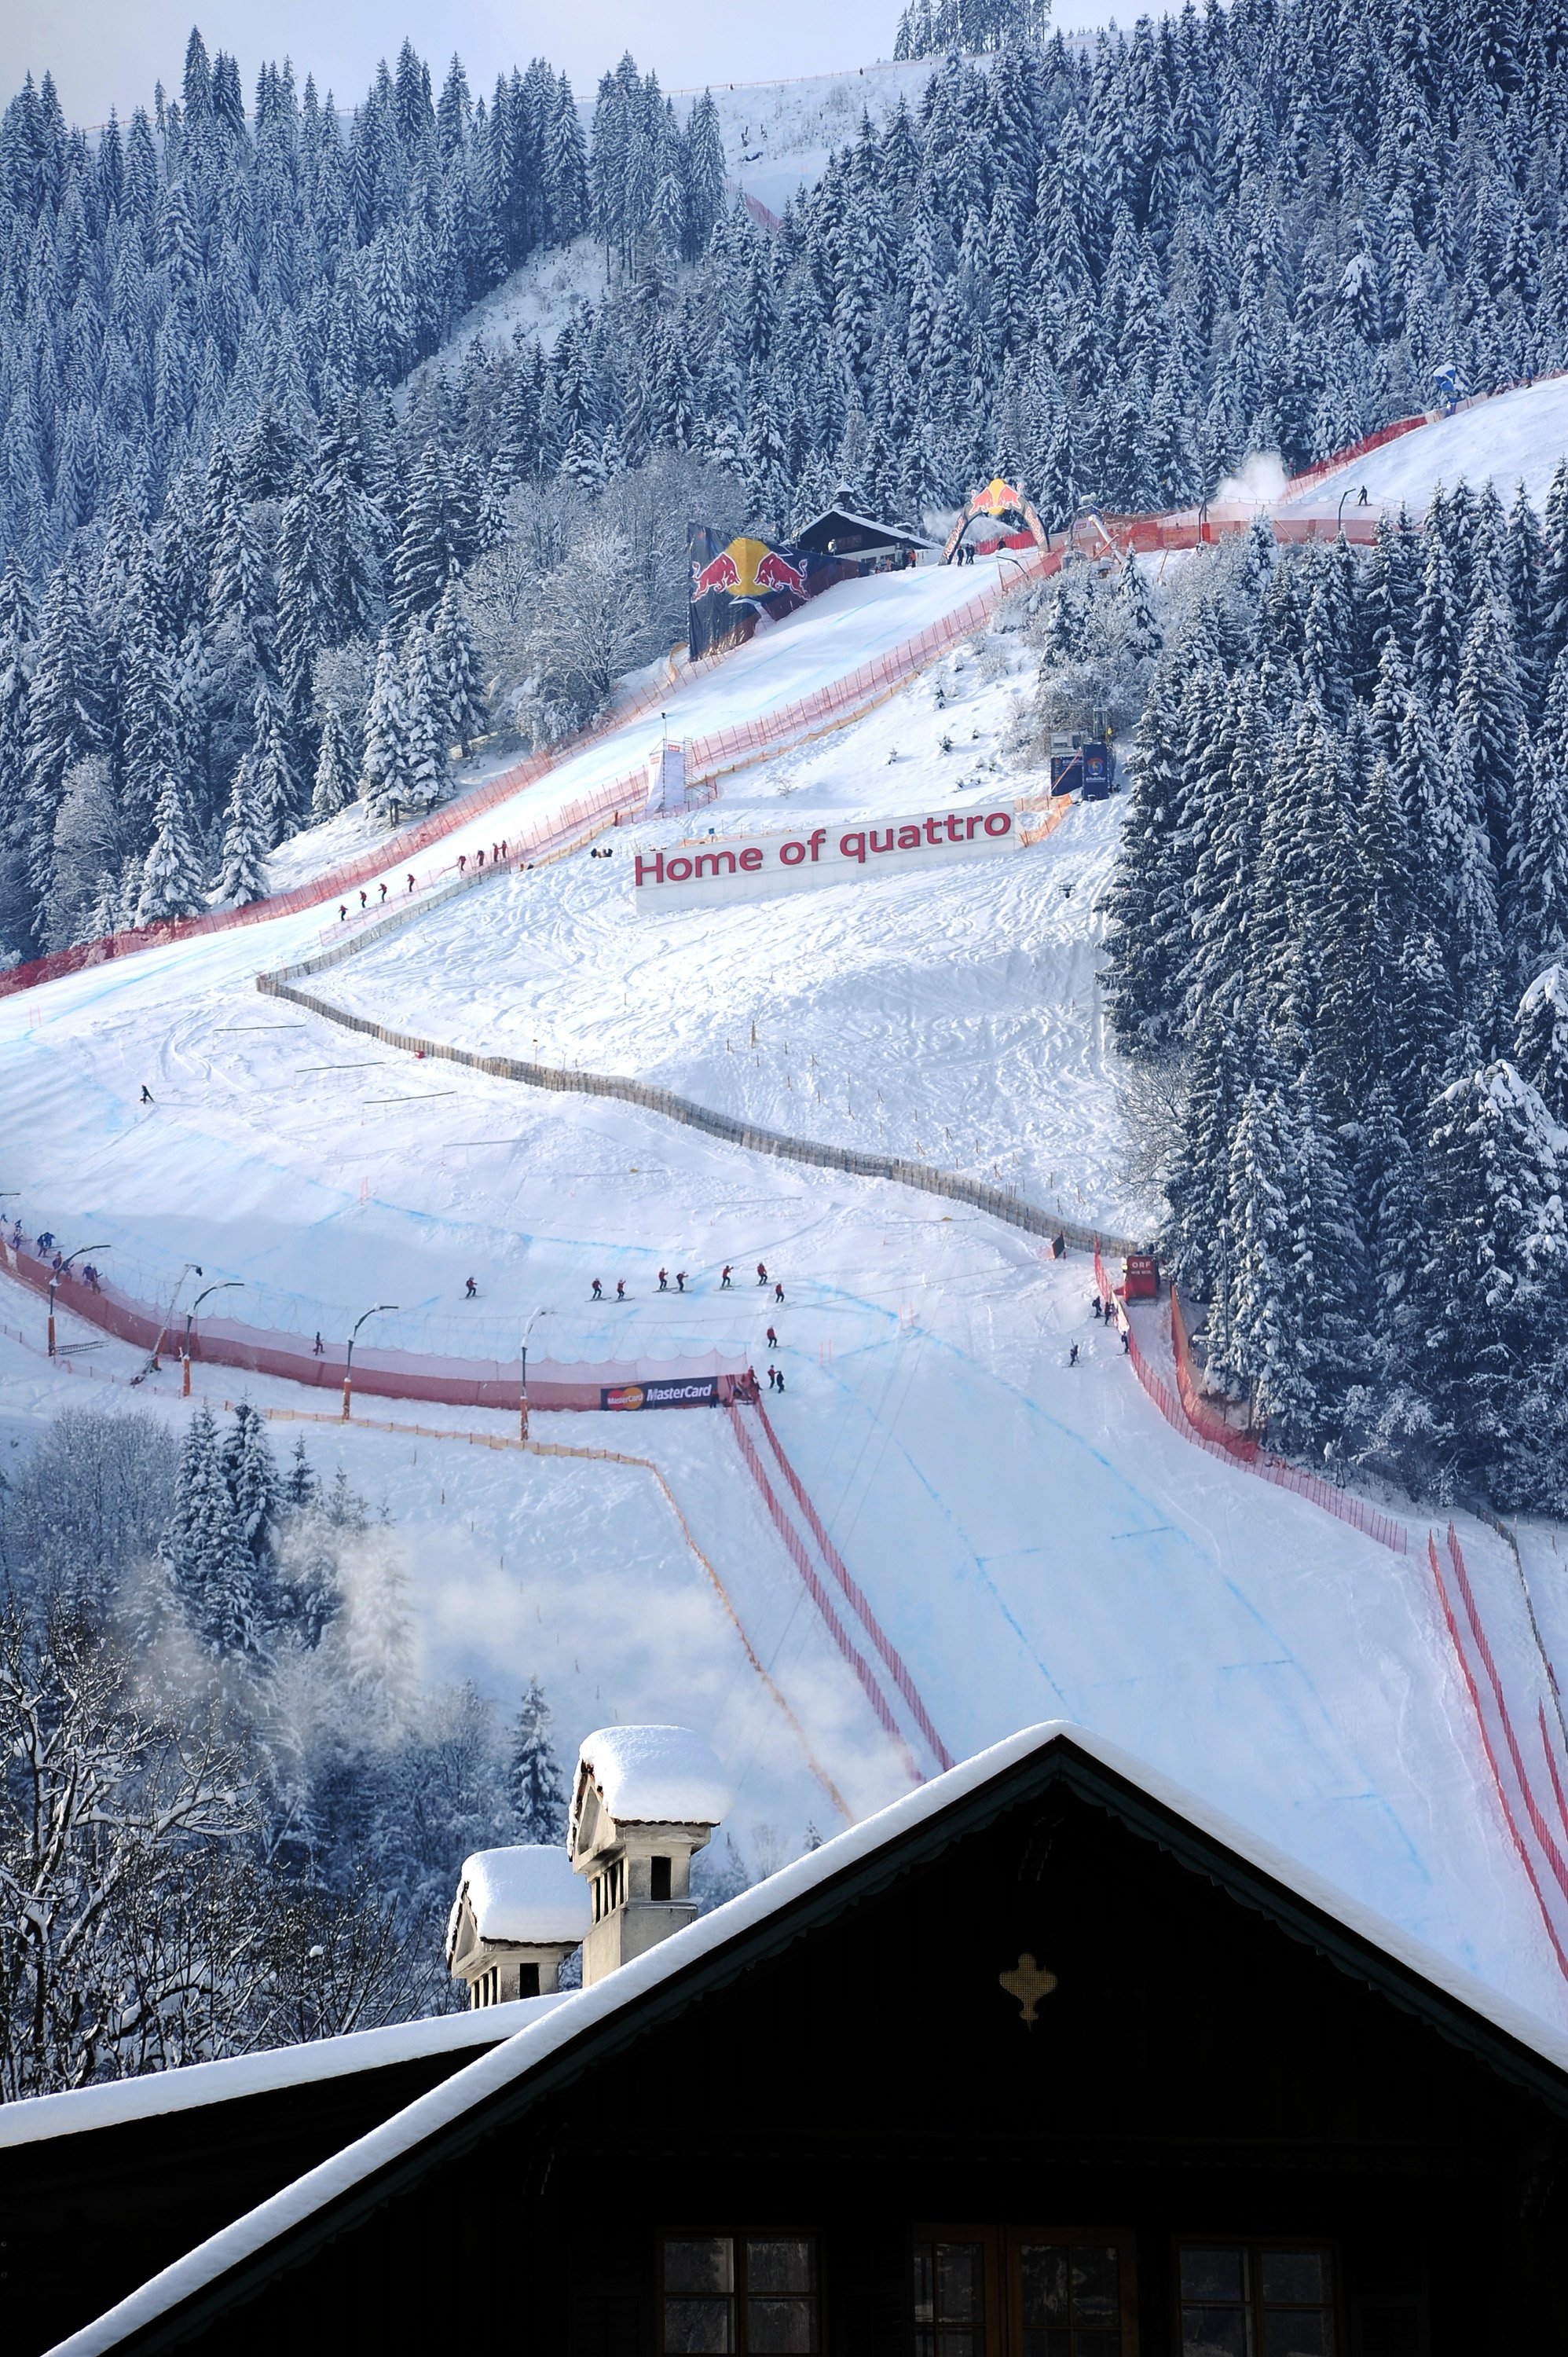 austria_alpine_skiing_world_cup172446317_r5122.jpg